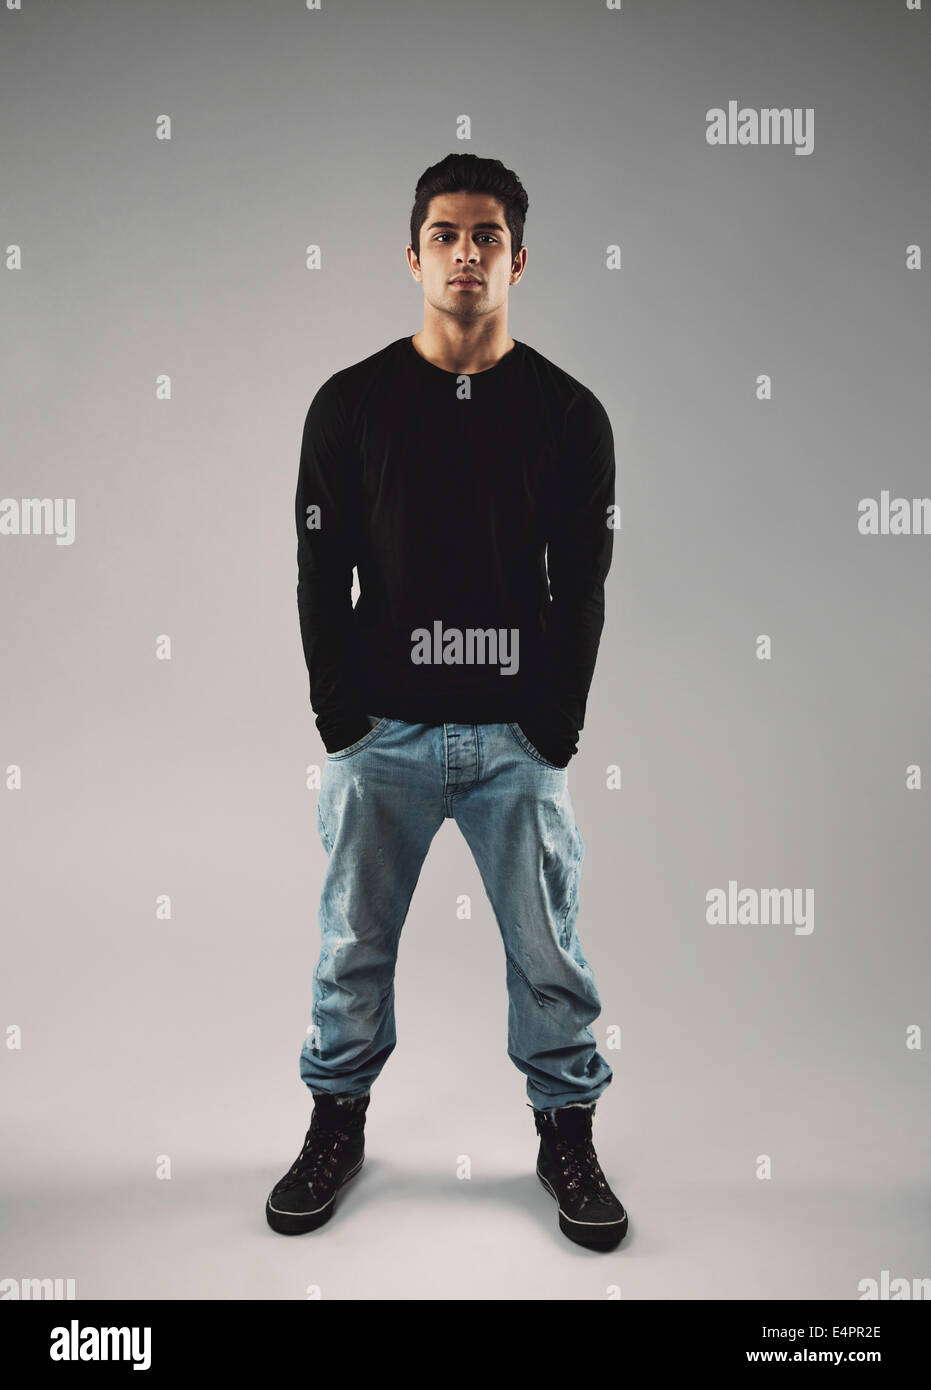 Full length portrait of stylish young man in casuals standing with his hands in pocket over grey background. - Stock Image